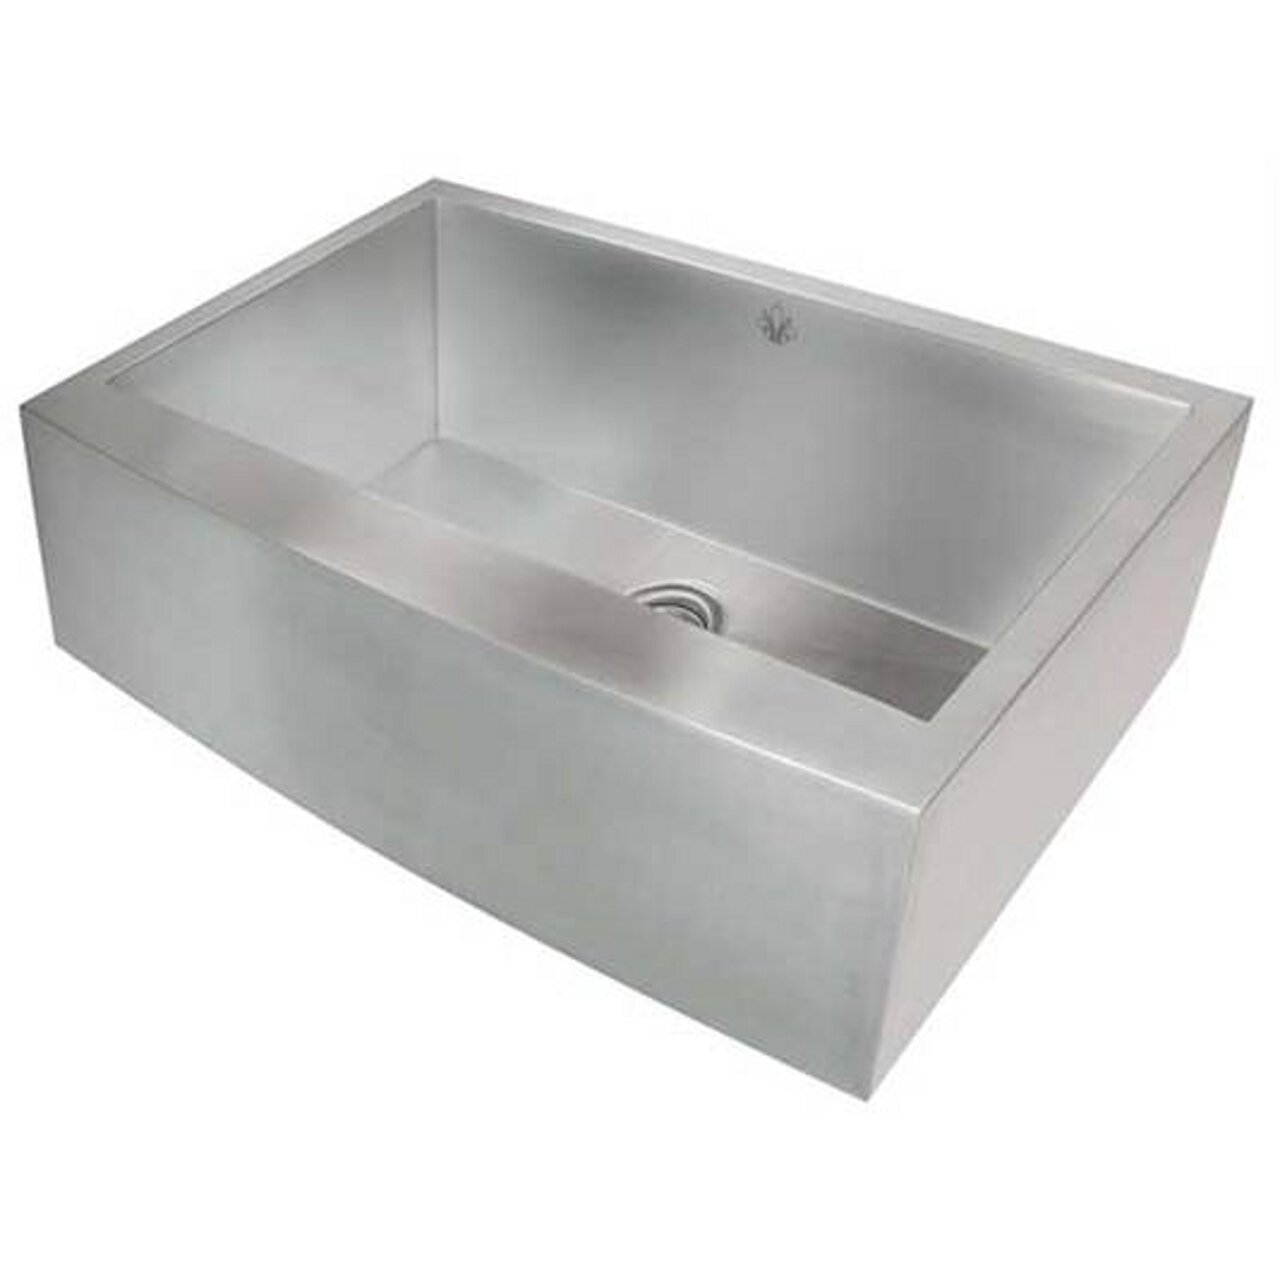 Artisan CPAZ-3021-D10 Single Basin 16-Gauge Stainless Steel Apron Sink Chef Pro Collection